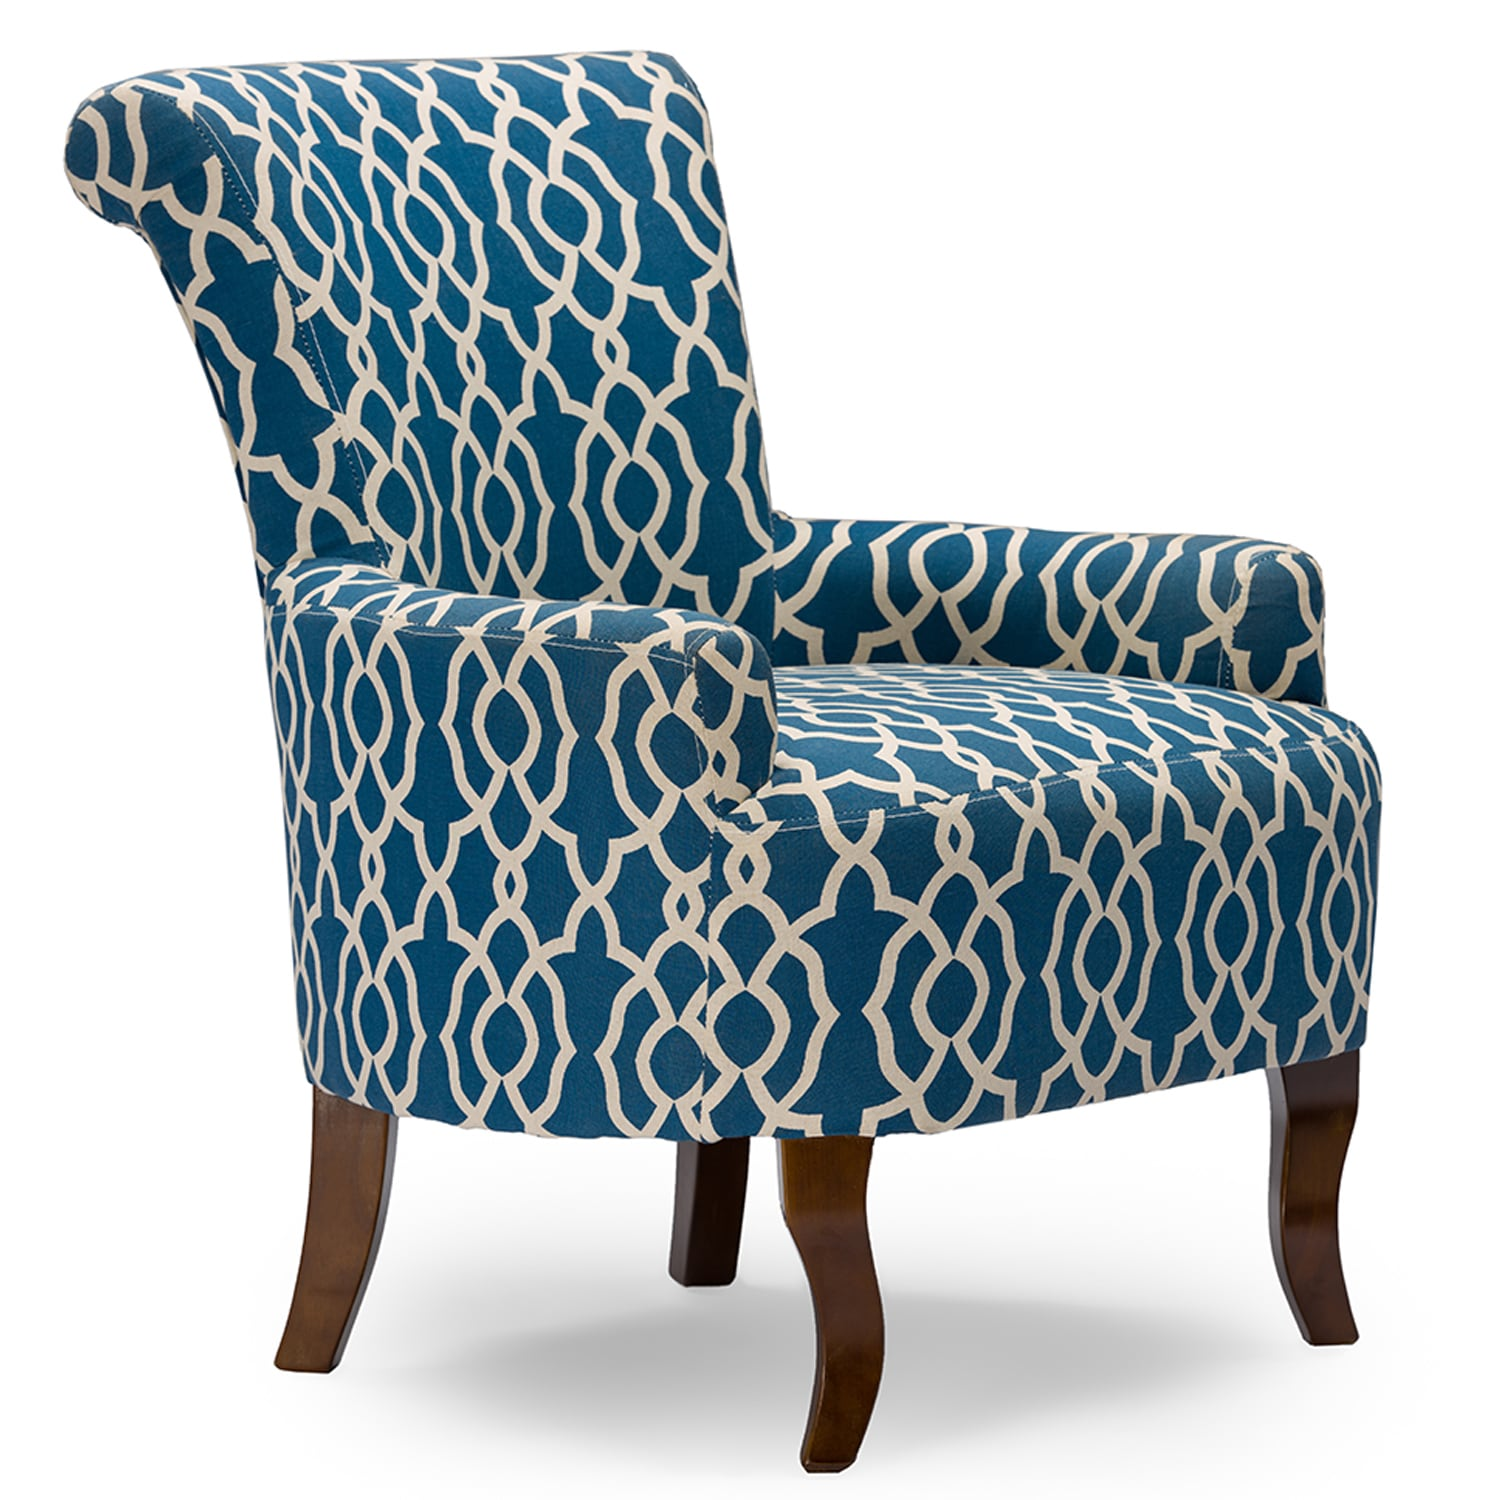 Blue Patterned Chair Audlington Contemporary Navy Blue Patterned Fabric Upholstered Armchair